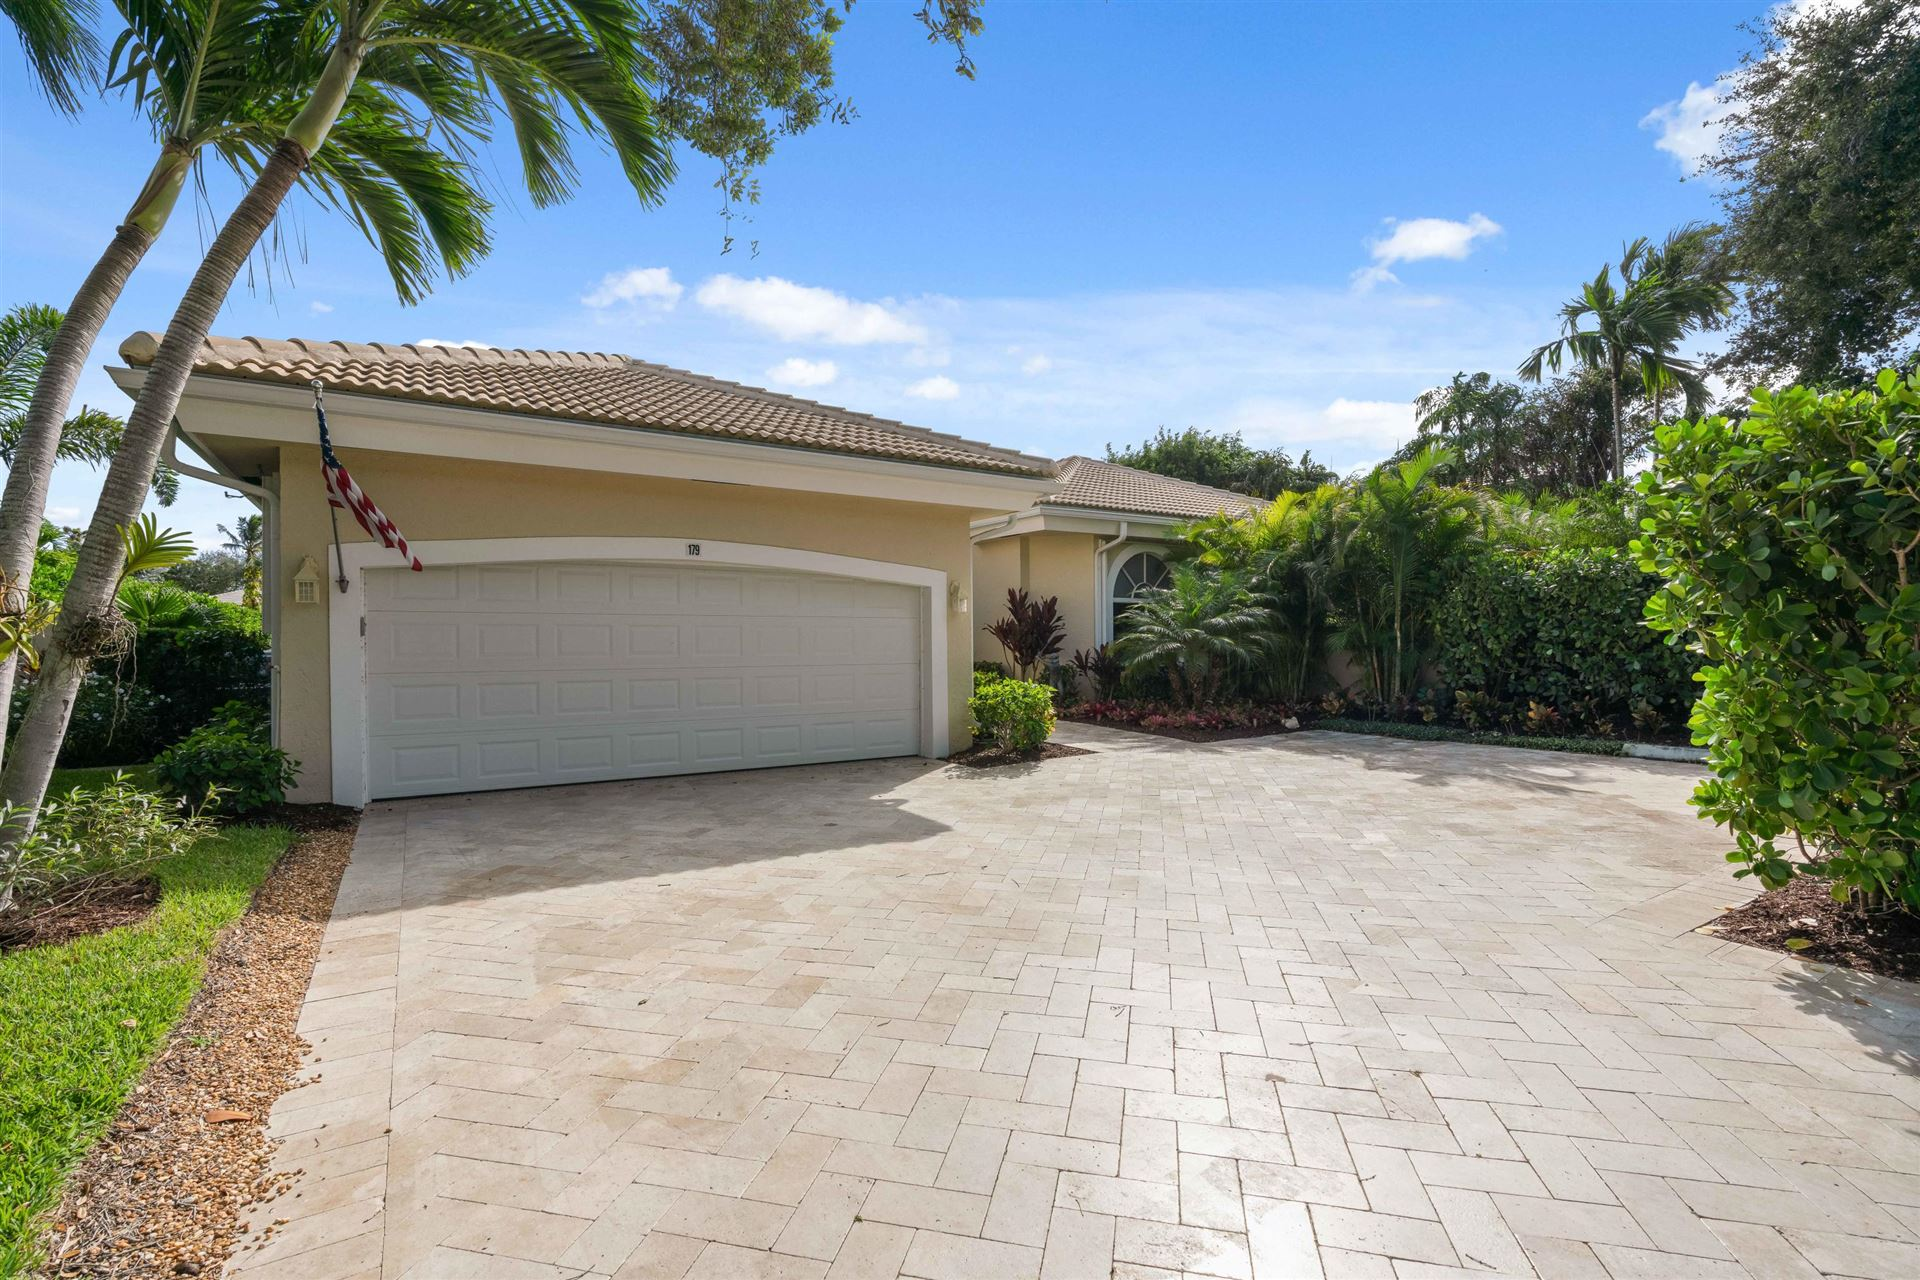 Photo of 179 Regatta Drive, Jupiter, FL 33477 (MLS # RX-10669182)